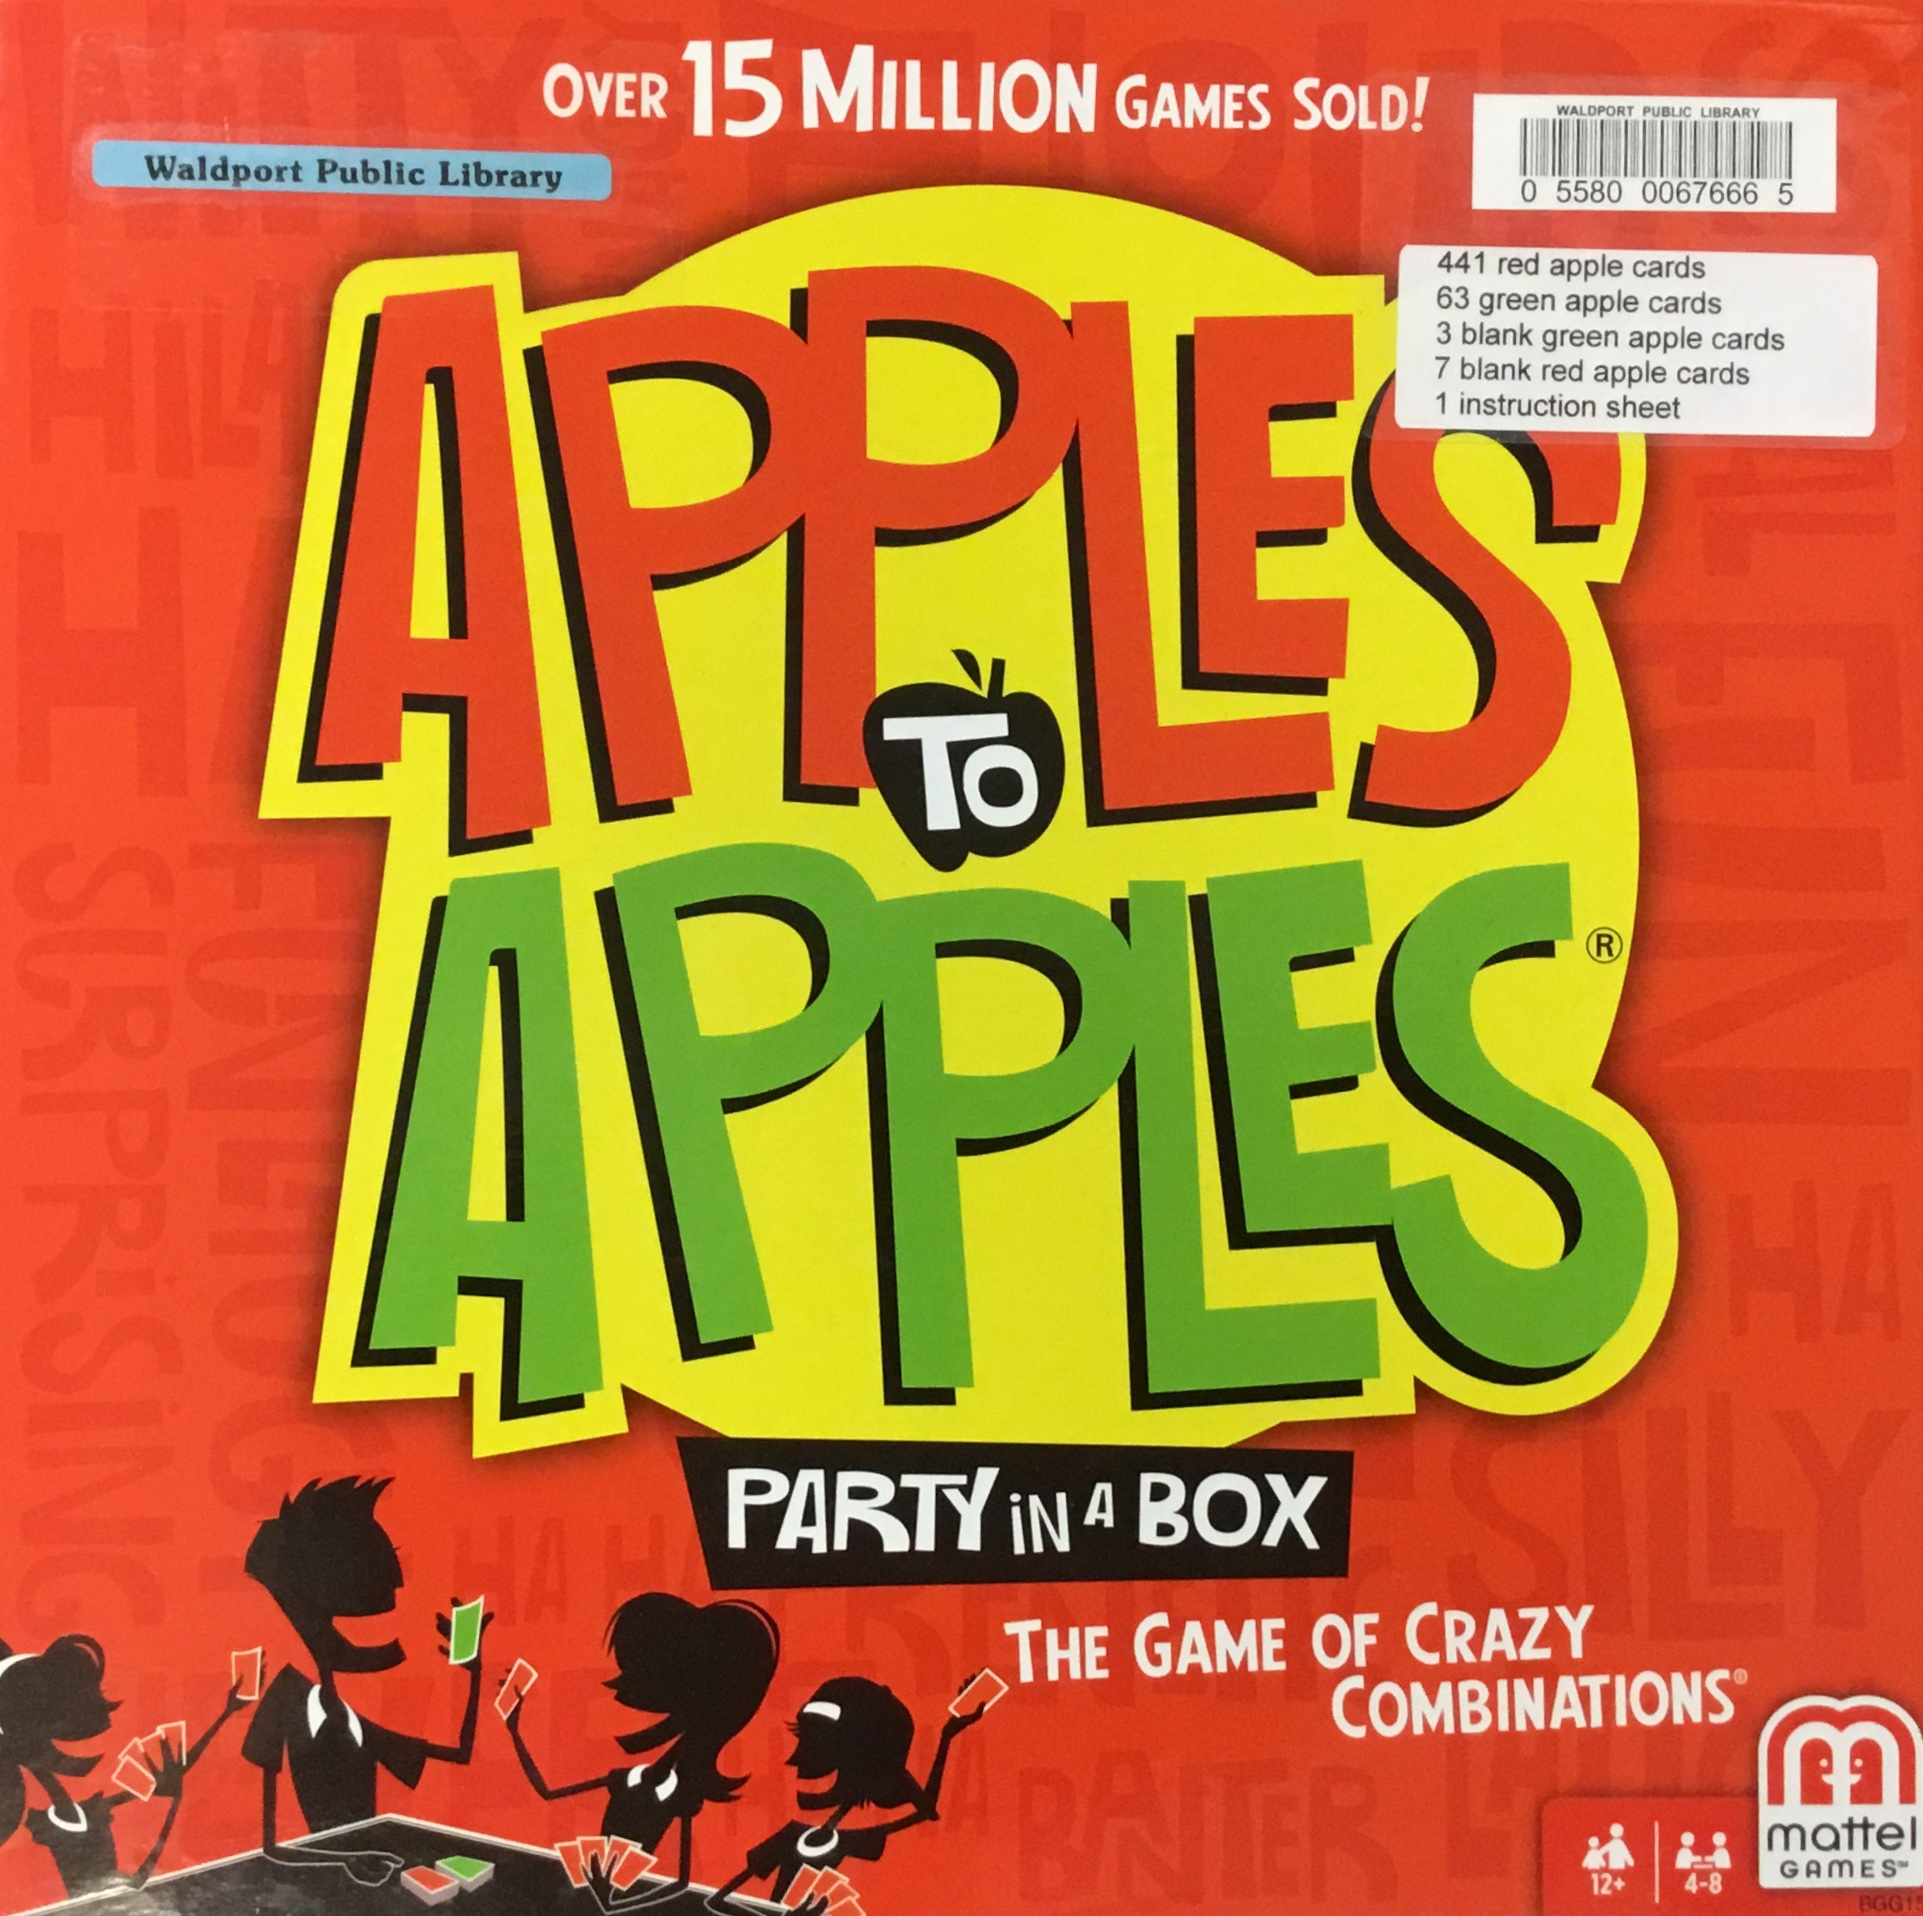 LIBGames Apples to Apples Party Image.jpg